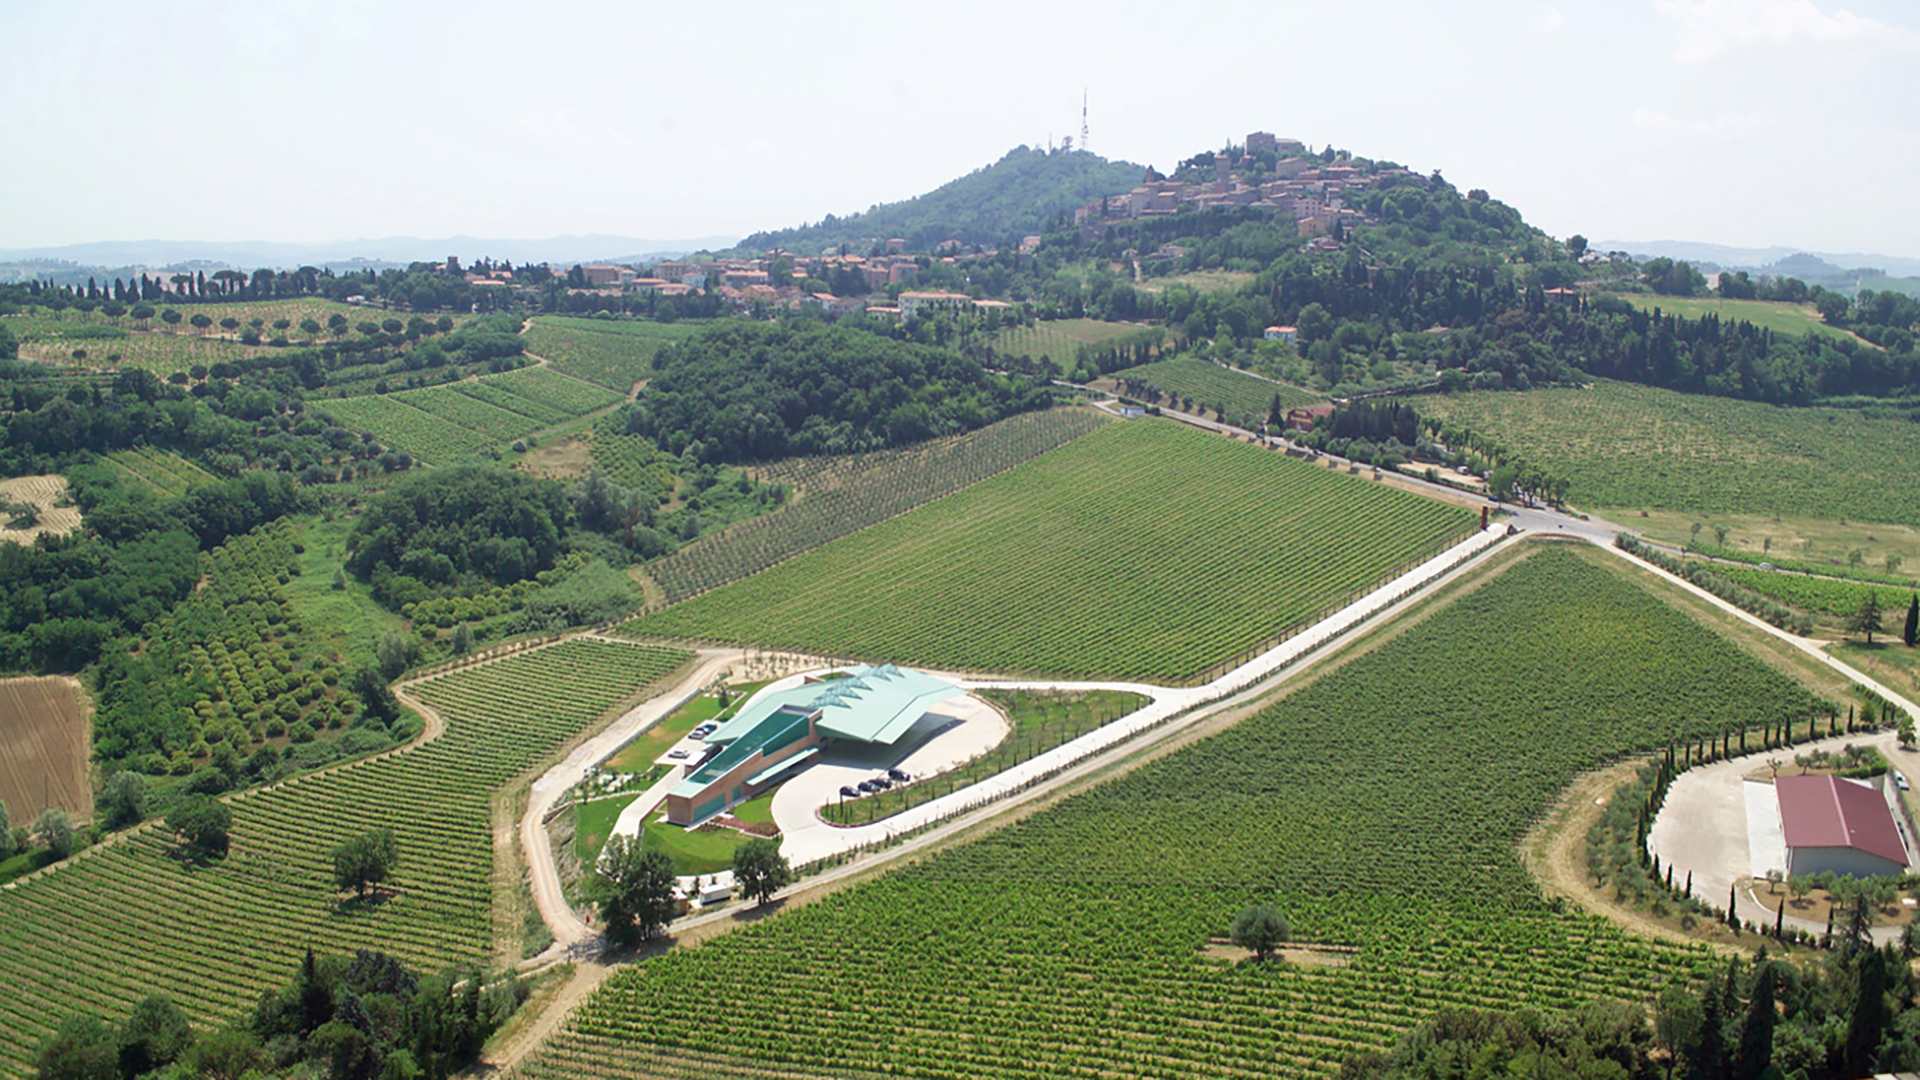 The Campo del Sole winery in Bertinoro: Photo 18